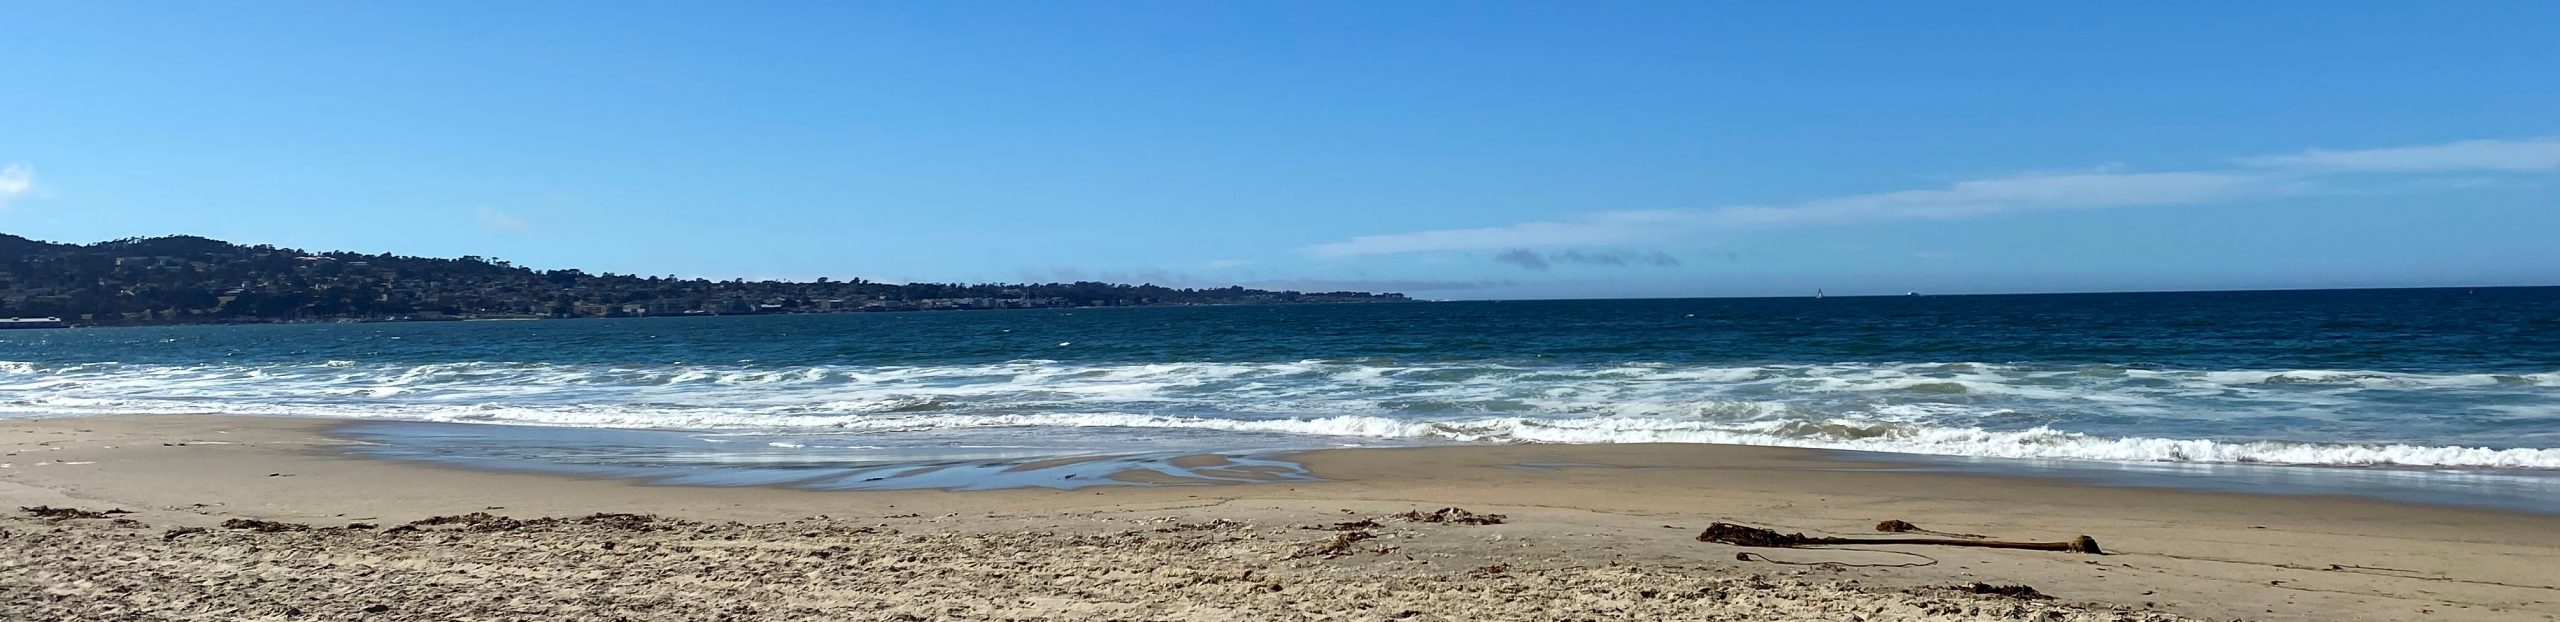 View of the Pacific Ocean from a sandy beach on a clear day.